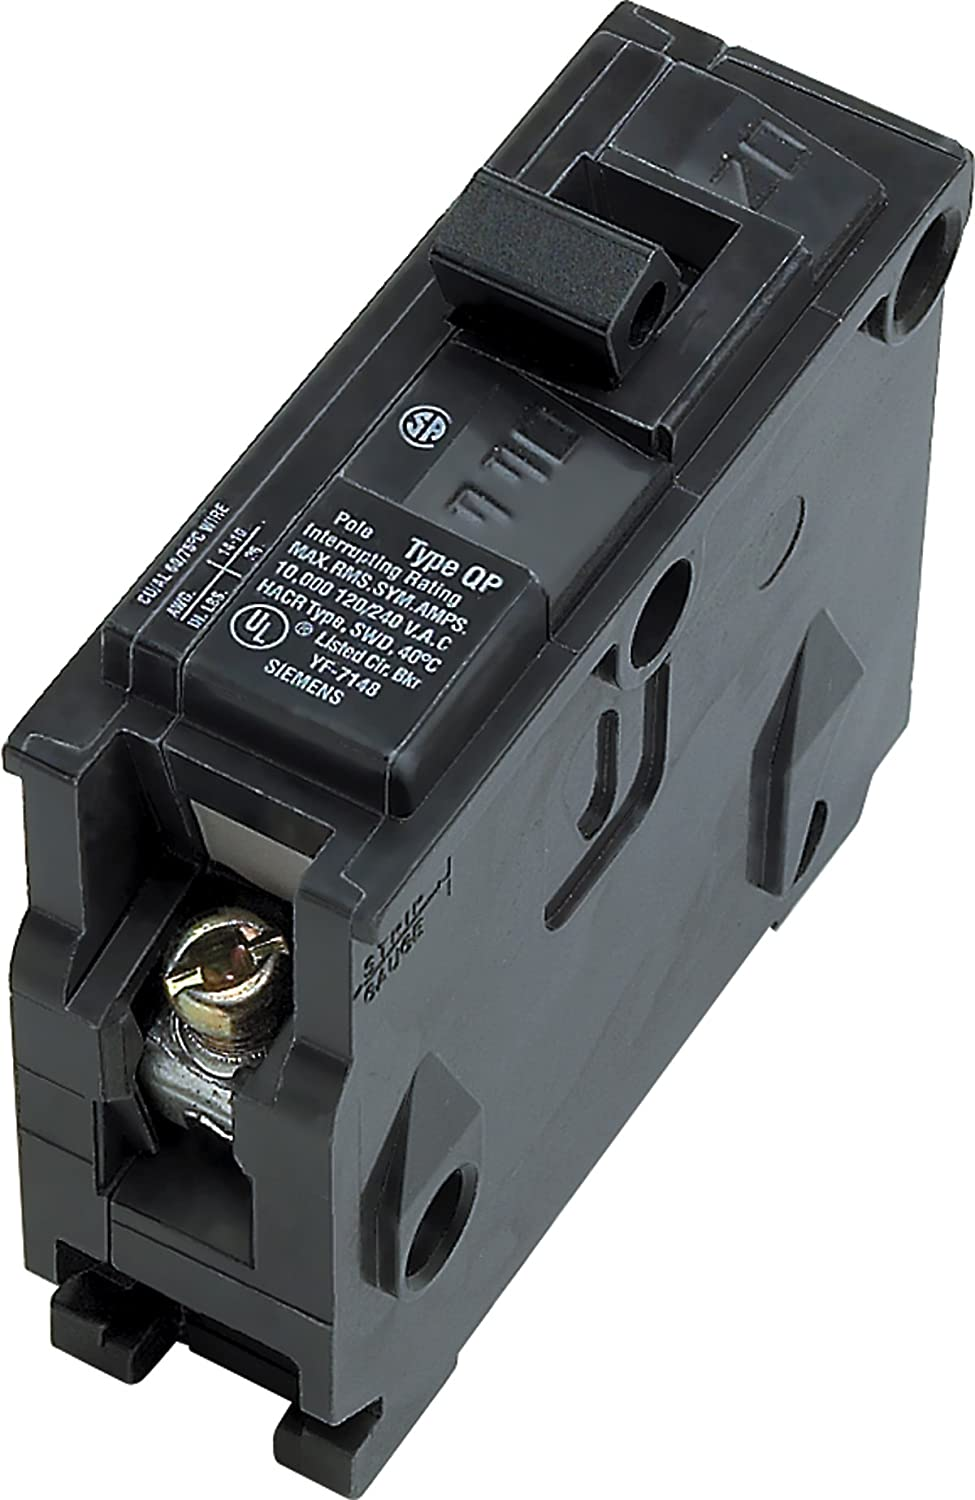 Q115 15 Amp Single Pole Type Qp Circuit Breaker Trip Of A Your Electrical Home Together With